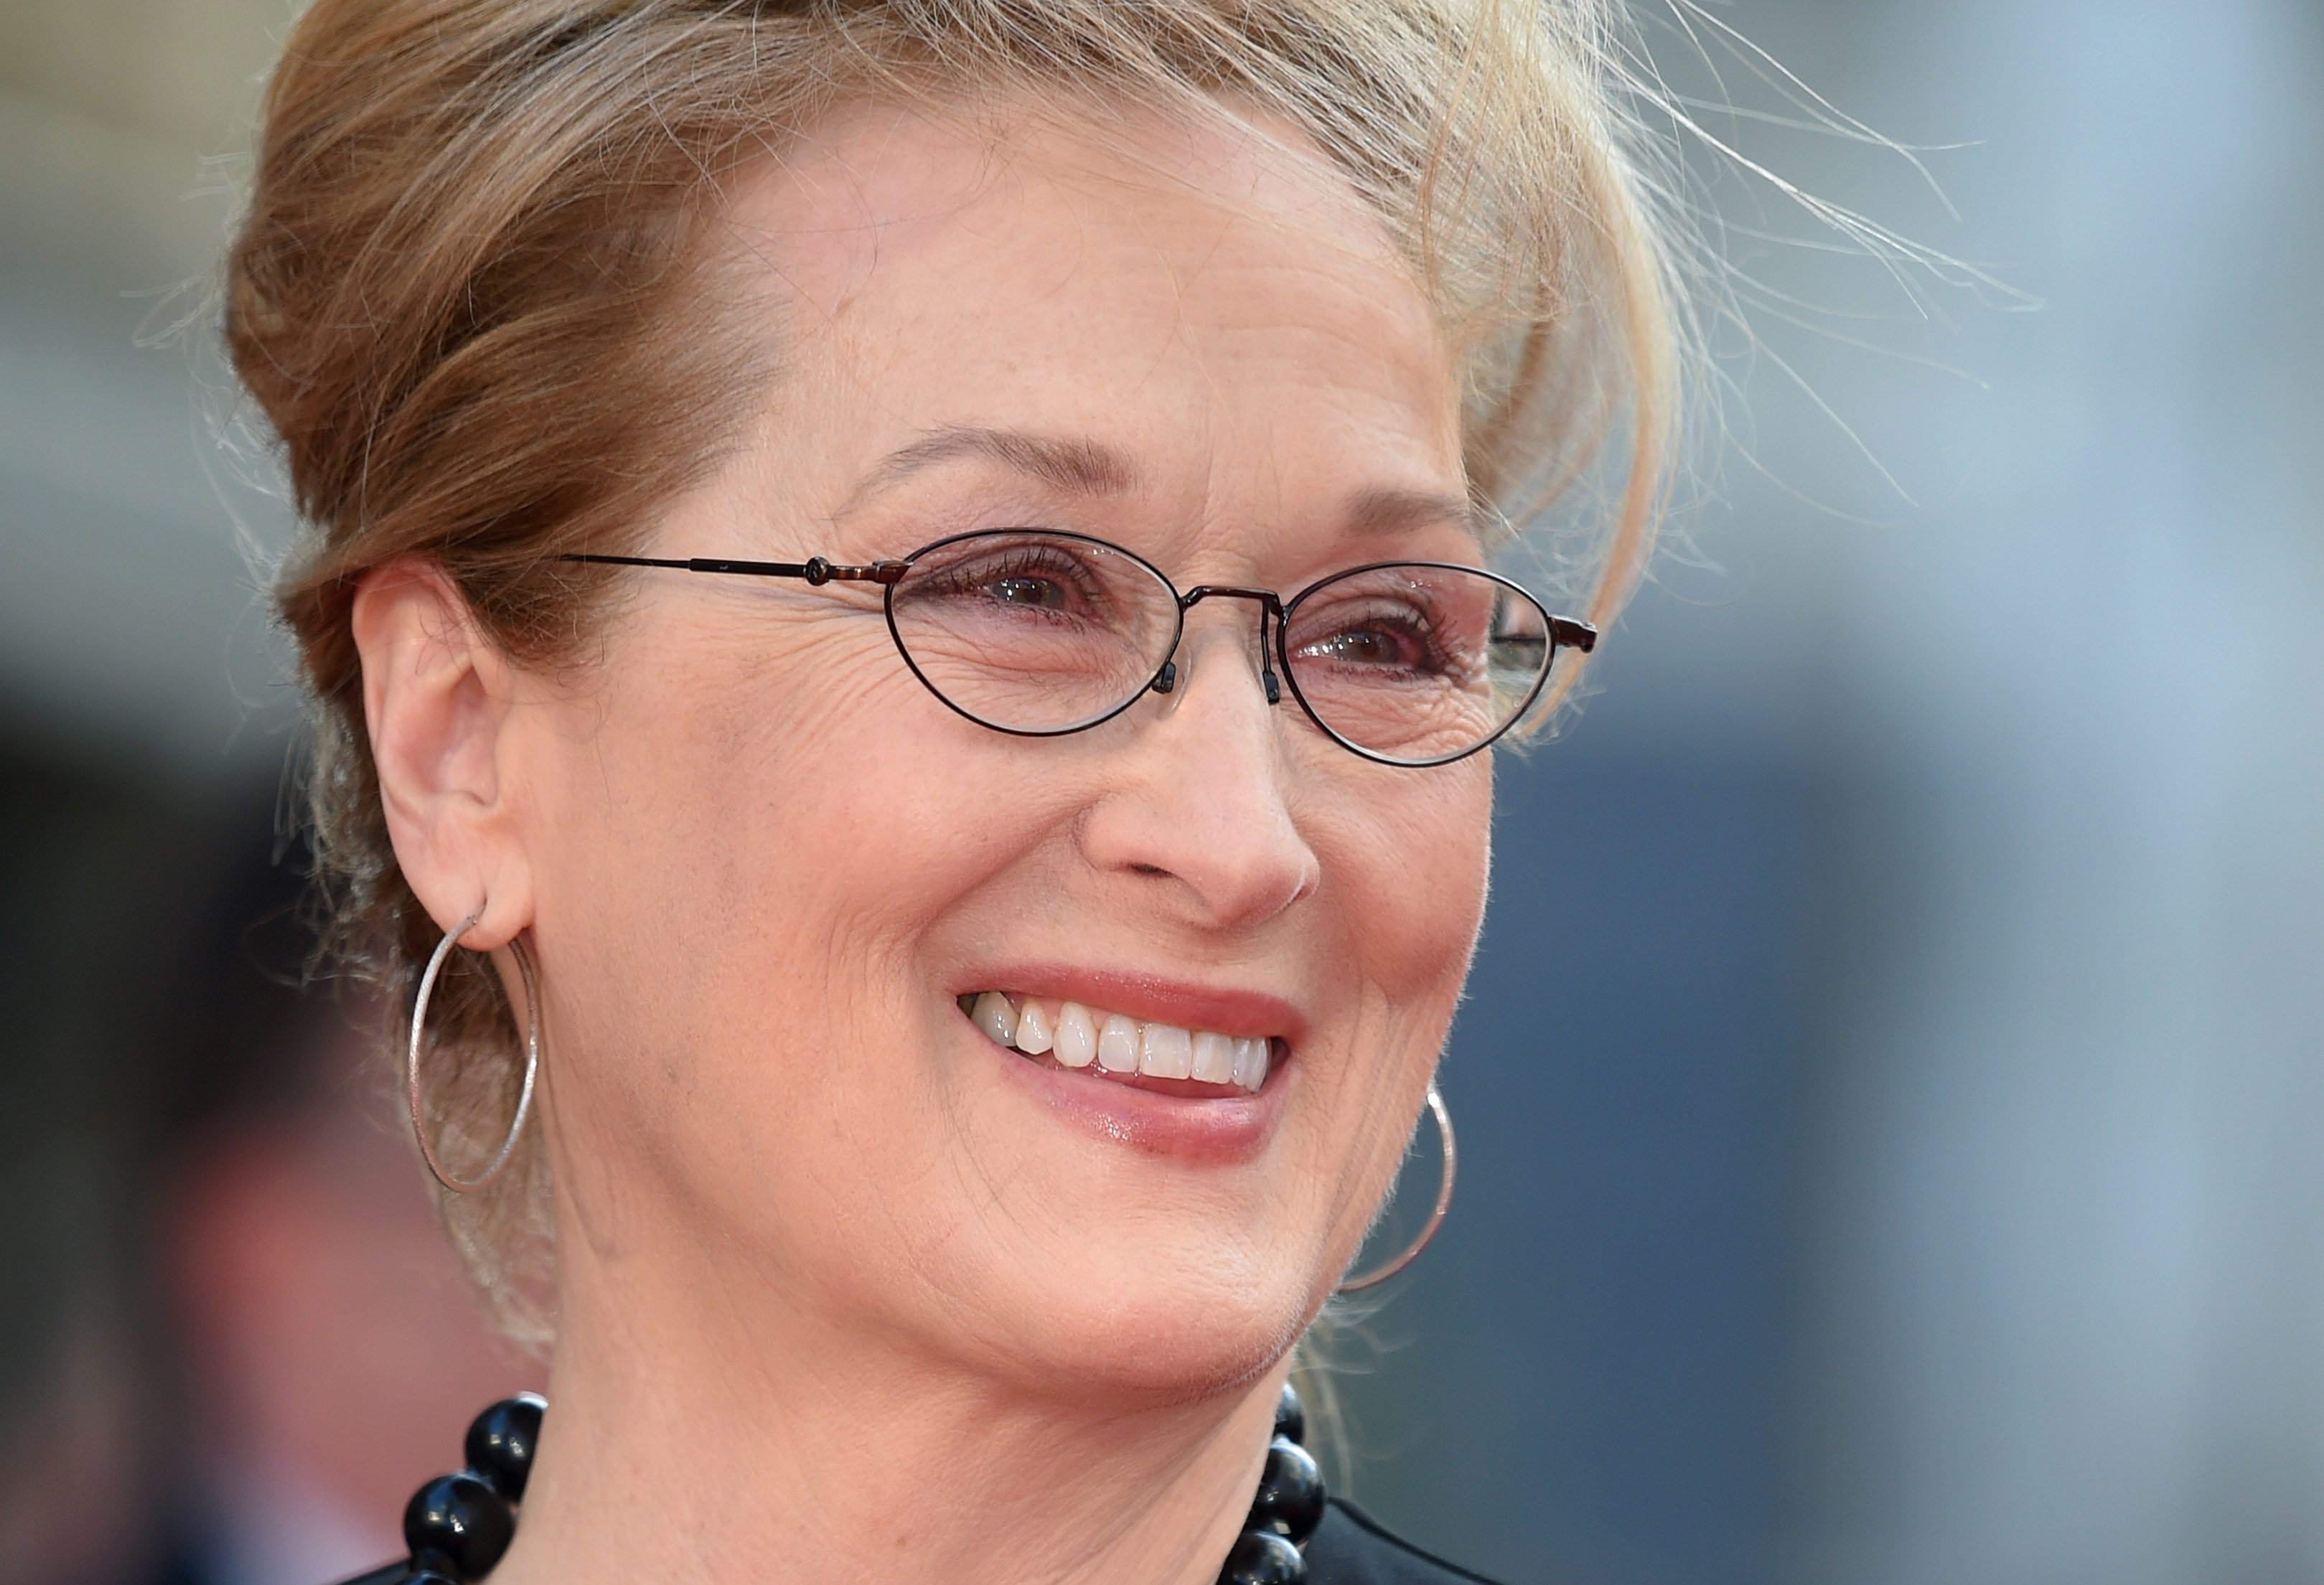 Meryl Streep arrives for the UK film premiere of  Florence Foster Jenkins  at Odeon Leicester Square on April 12, 2016 in London, England.